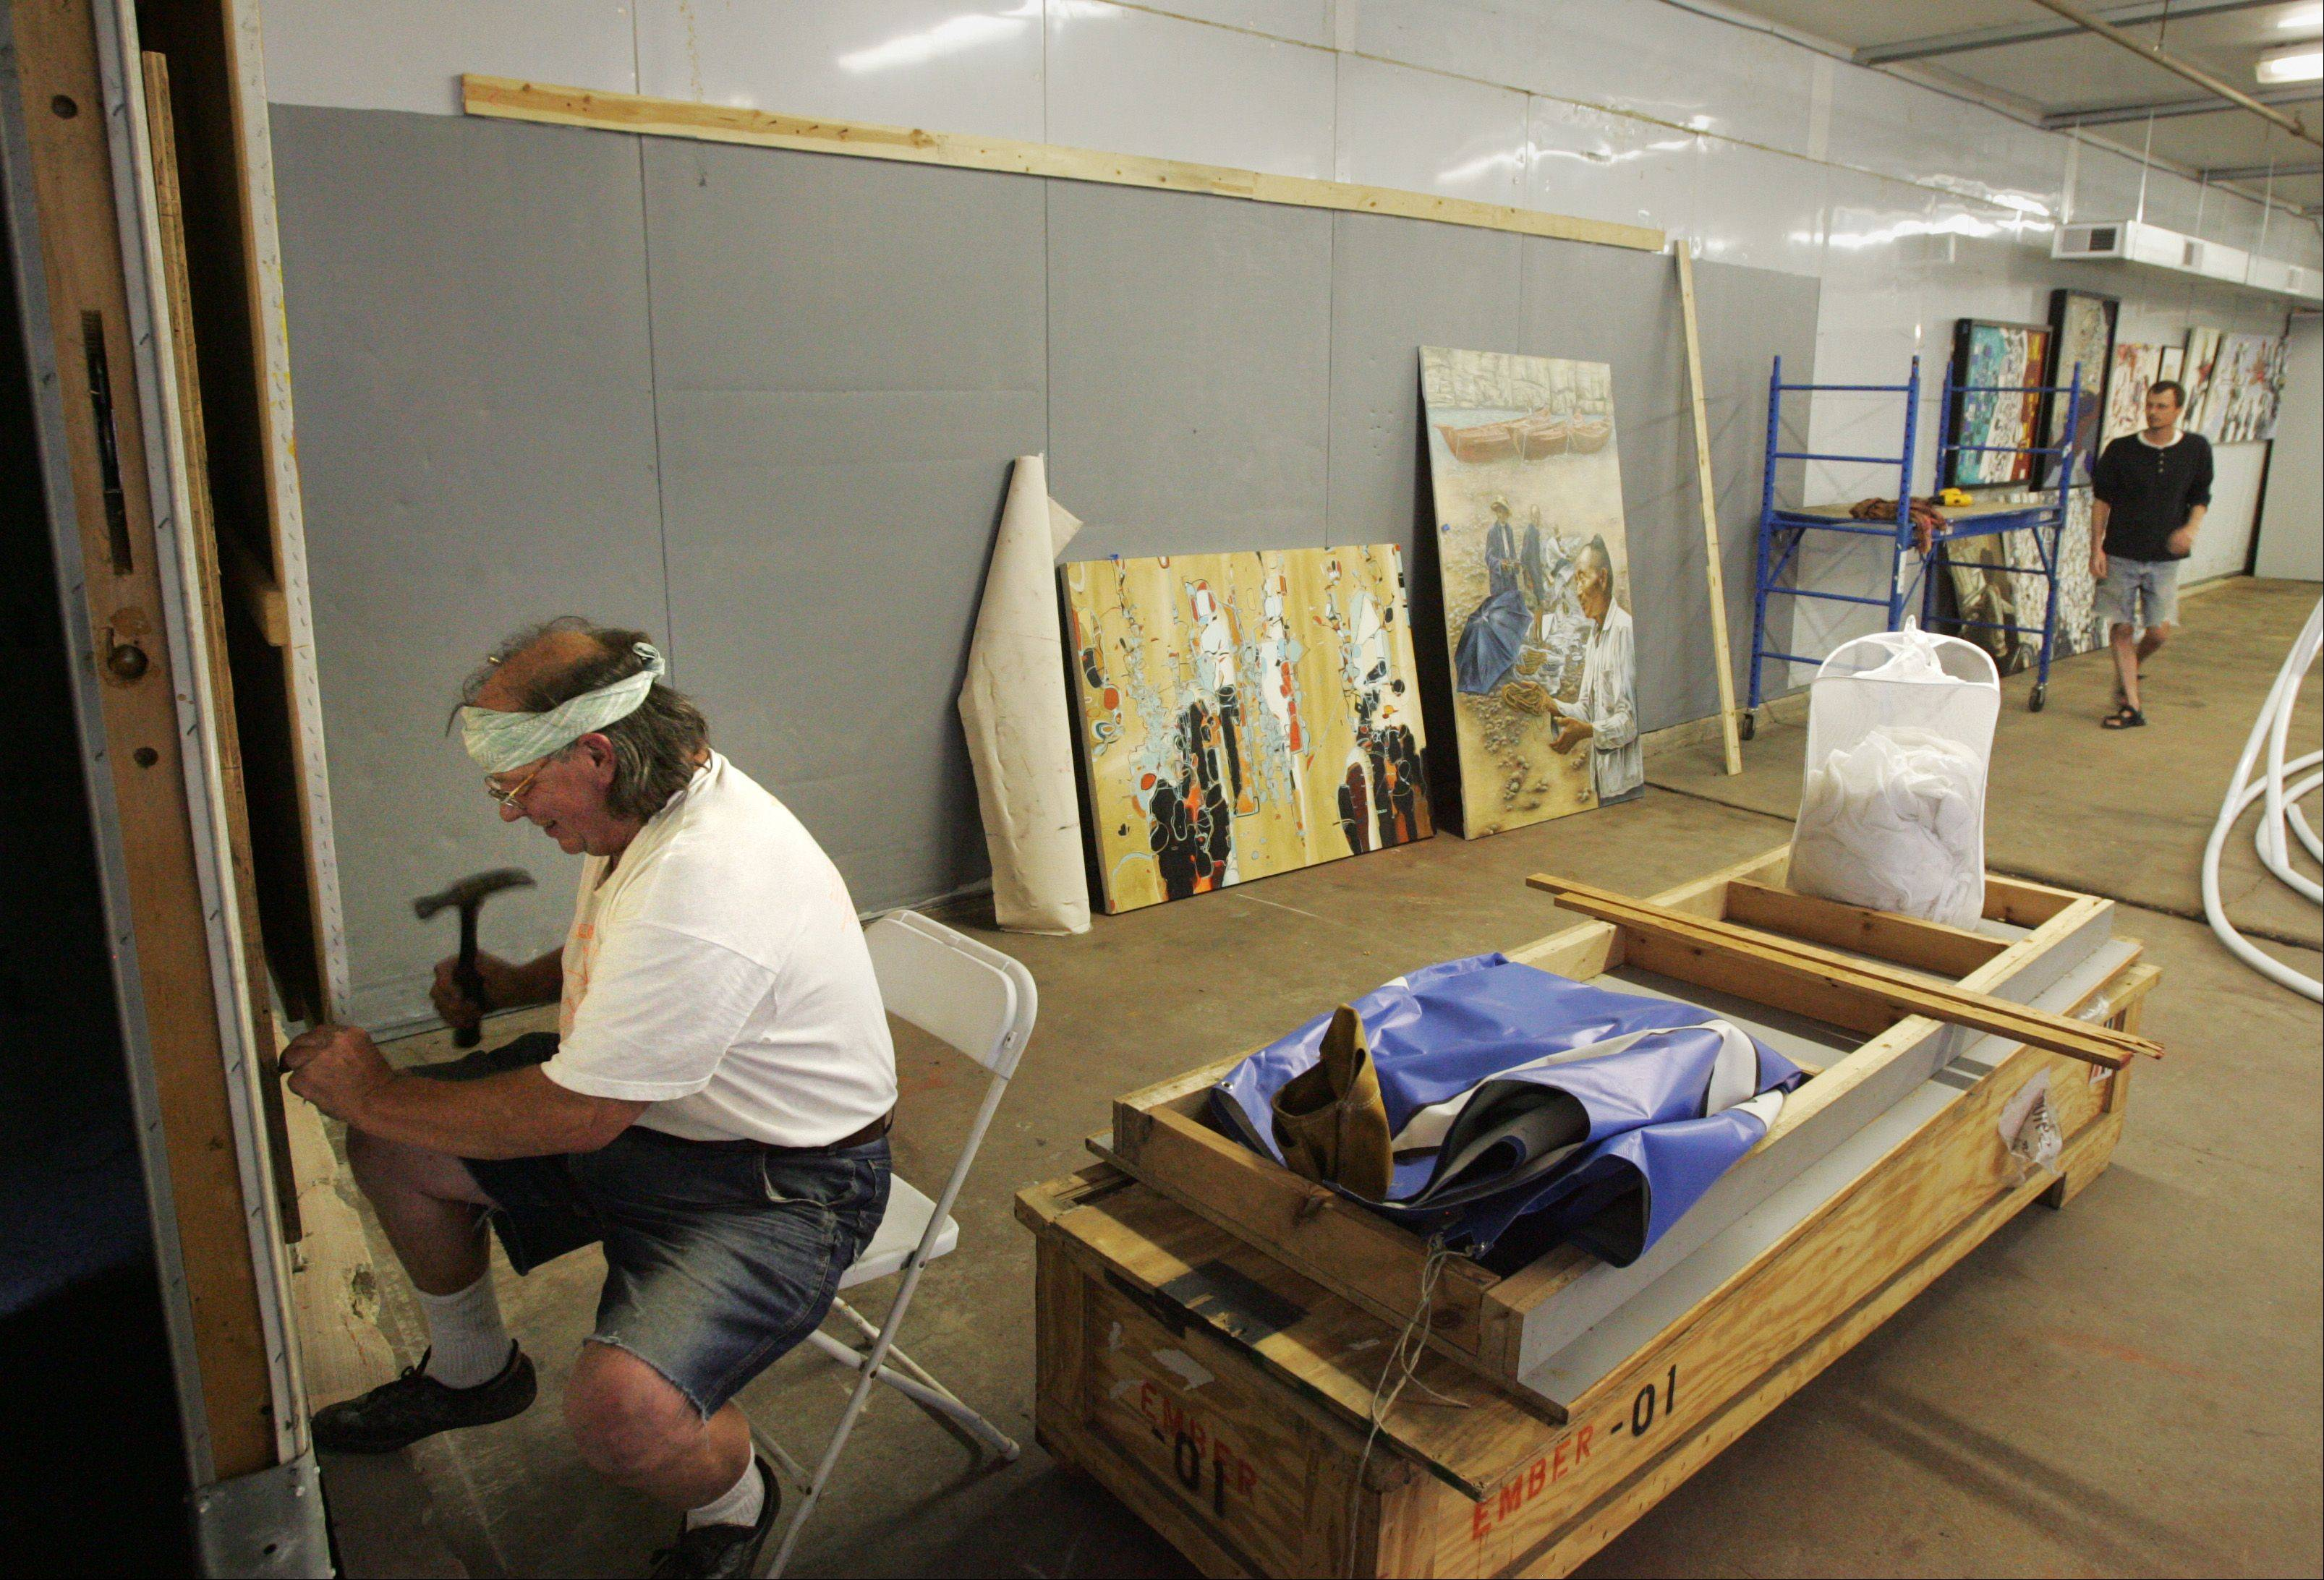 Artist David Powers, left, sets up a gallery exhibit in the Haight warehouse downtown Elgin. Helping out is oil painter Peter Zalesky, who is also showing his own work at The Next Wave Art Salon, which runs from 6 to 10 p.m. today and Saturday, Sept. 9 and 10.